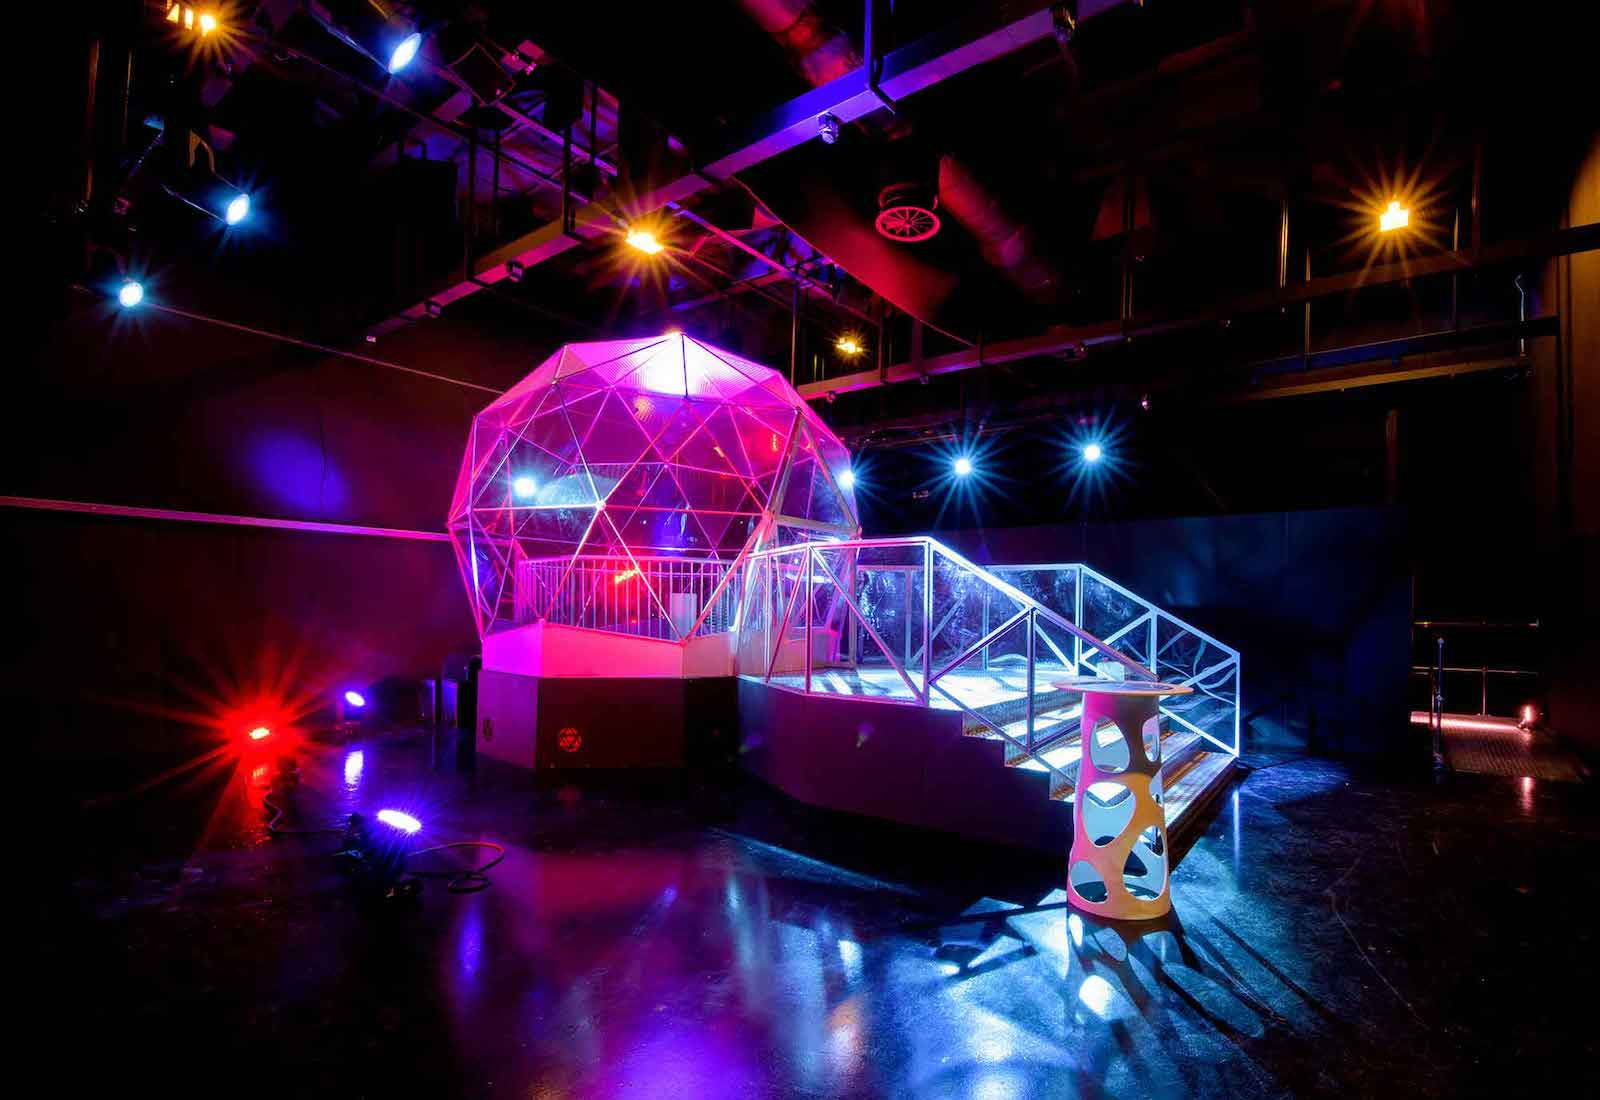 Crystal Maze experience - what impact will COVID-19 have on immersive experiences